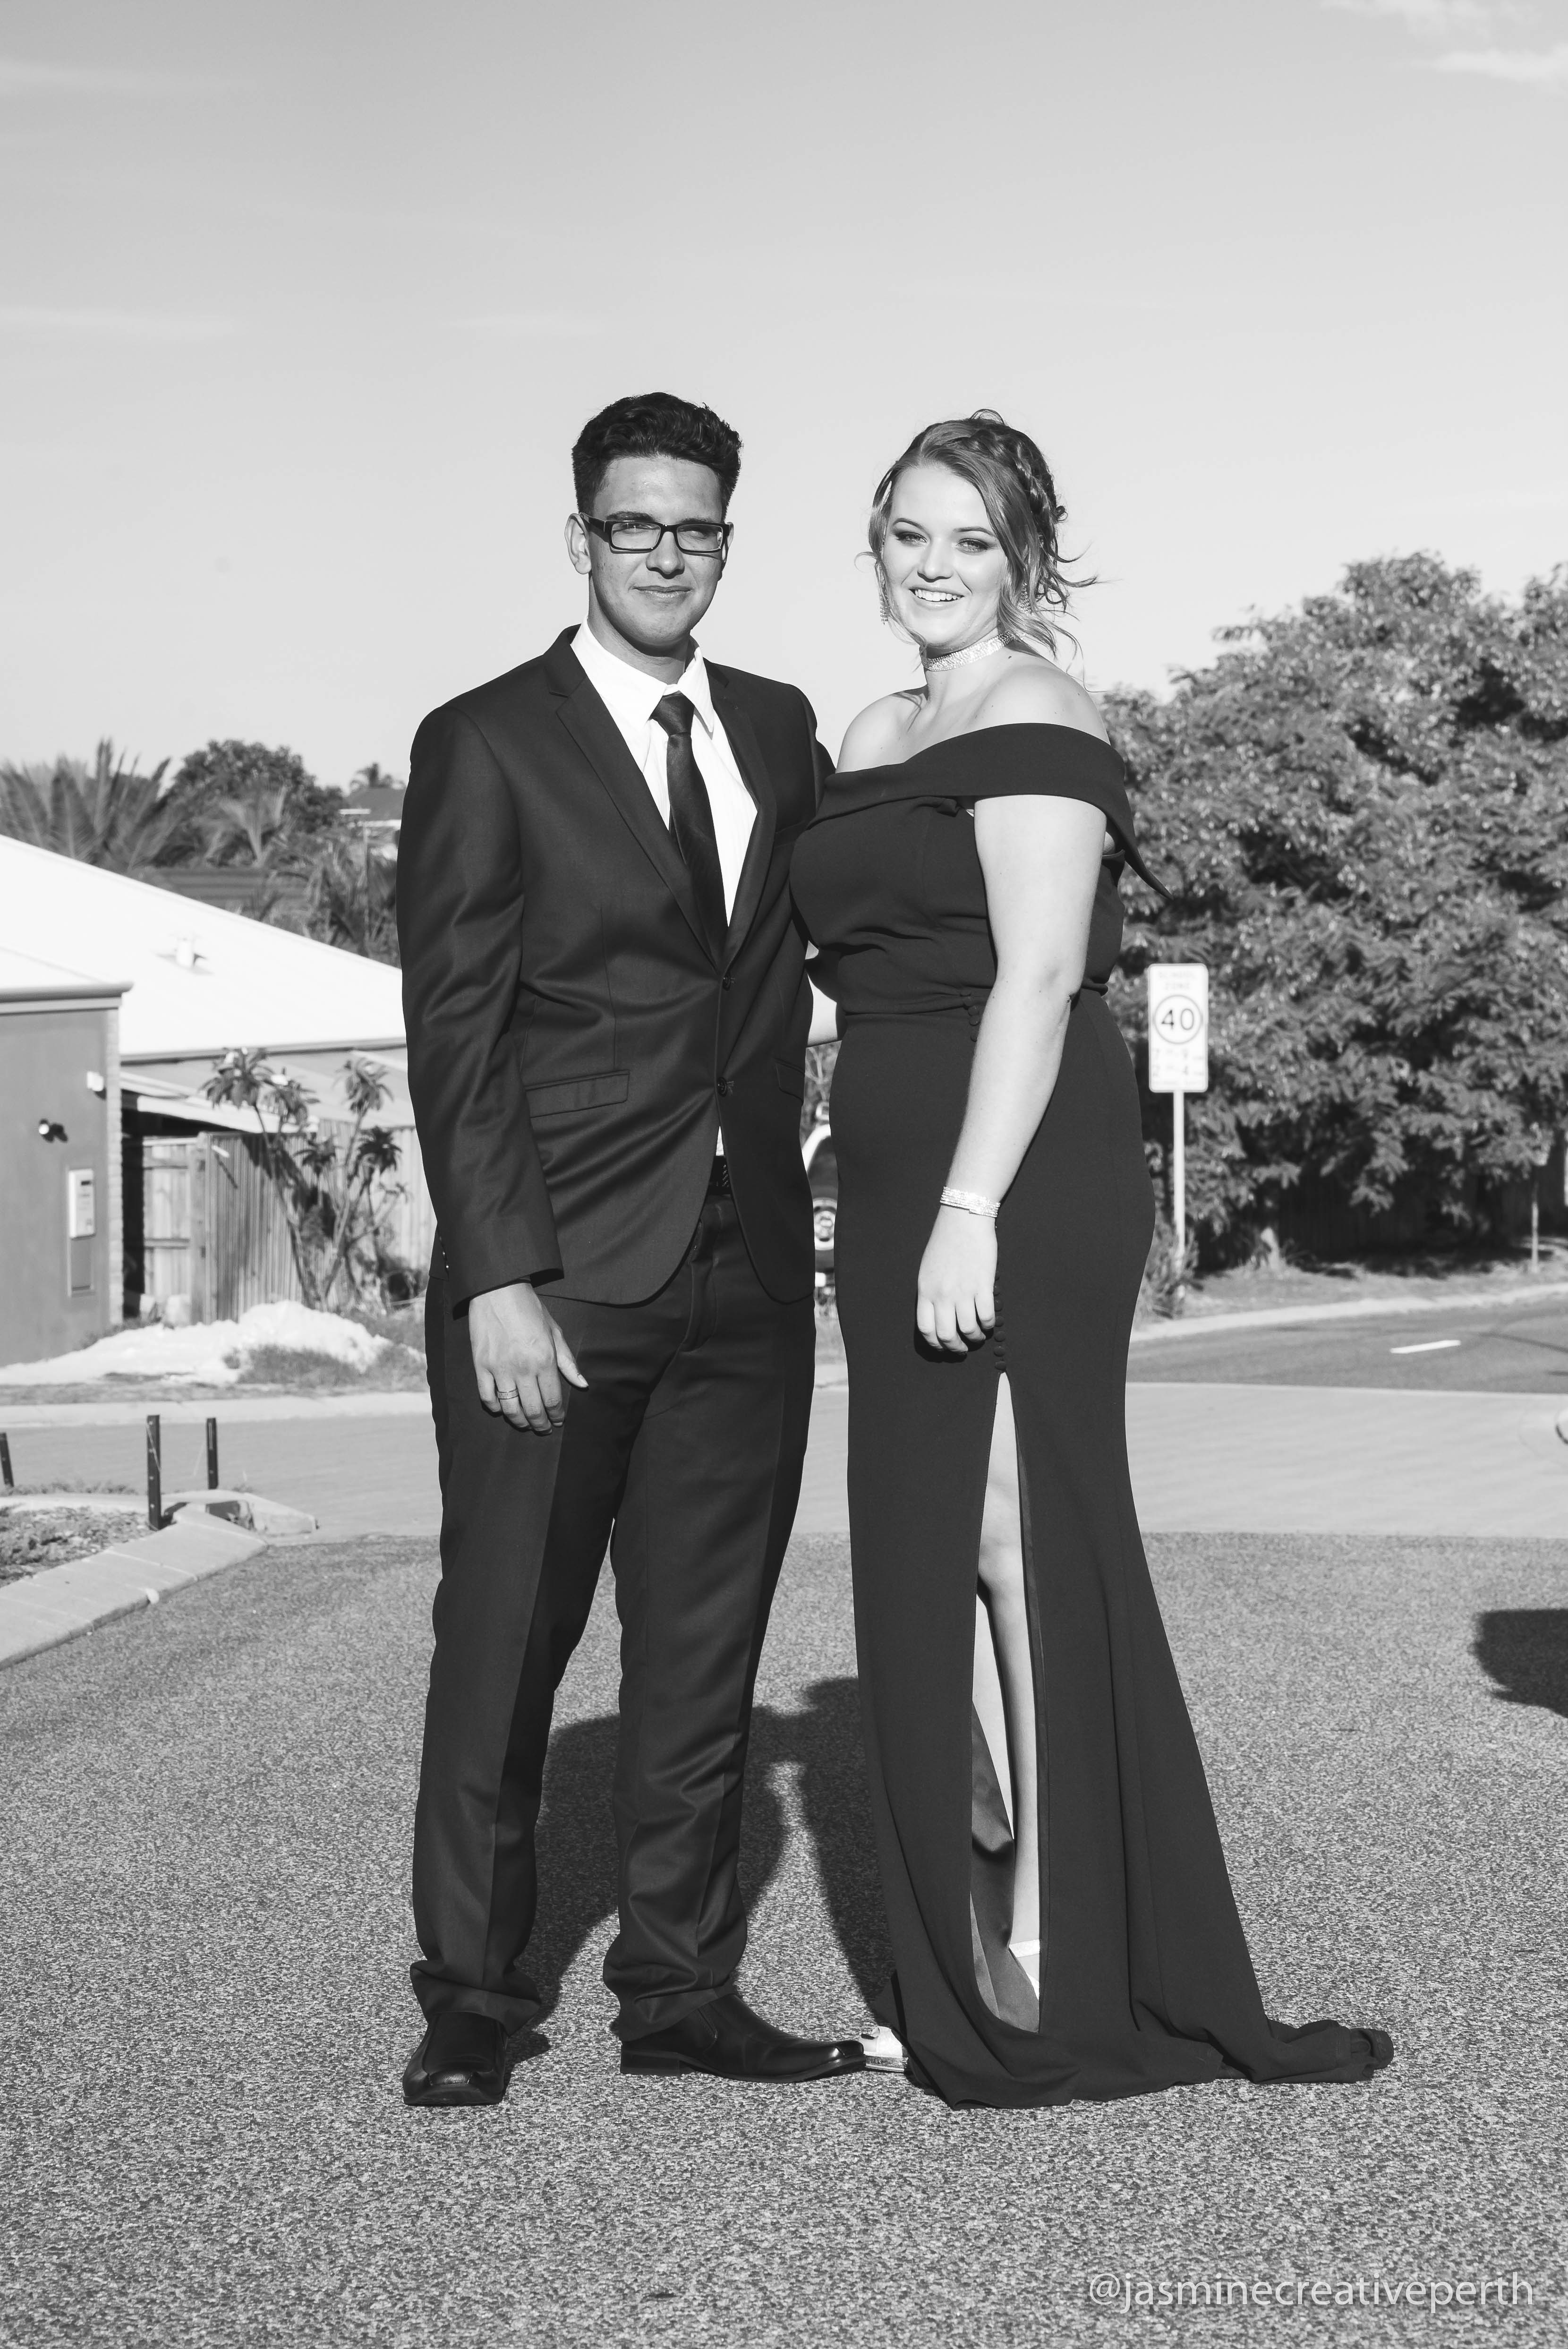 photography photographer perth portrait formal graduation ball couple school (1 of 5).jpg